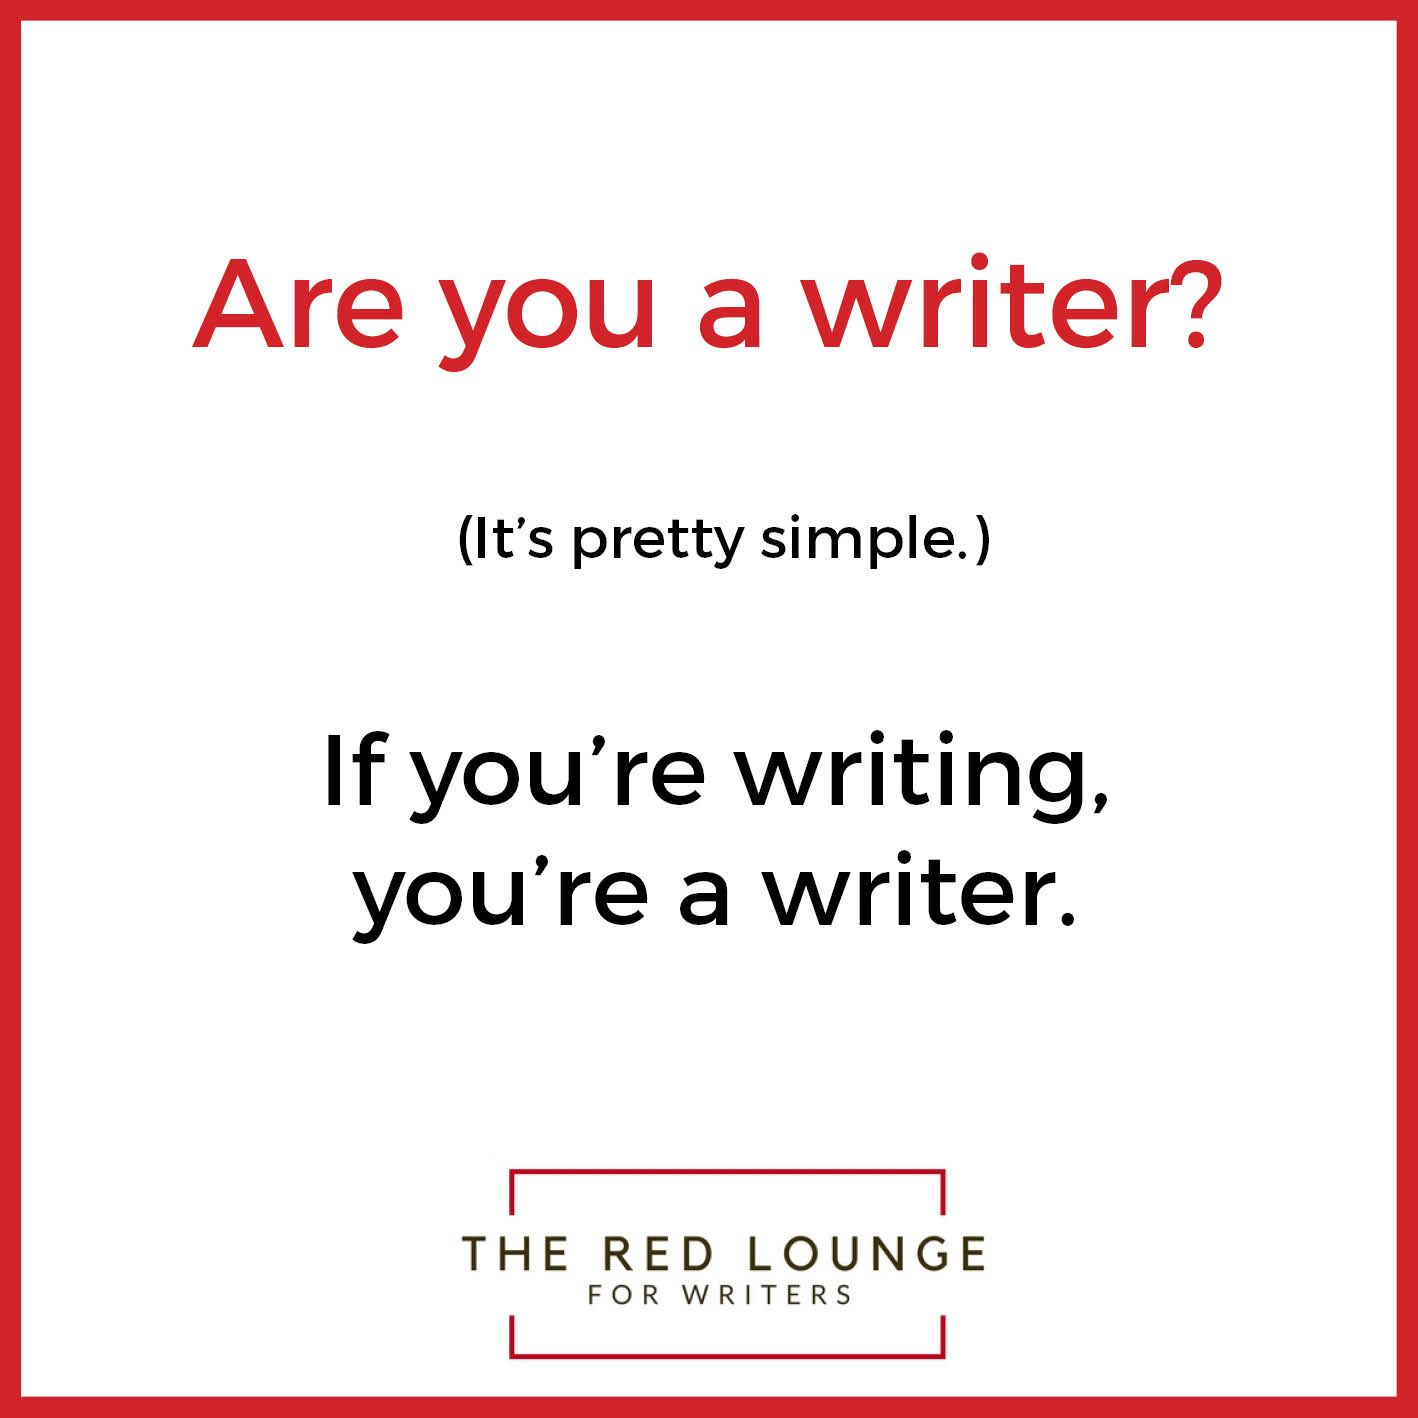 Encouragement For Writers At The Red Lounge For Writers